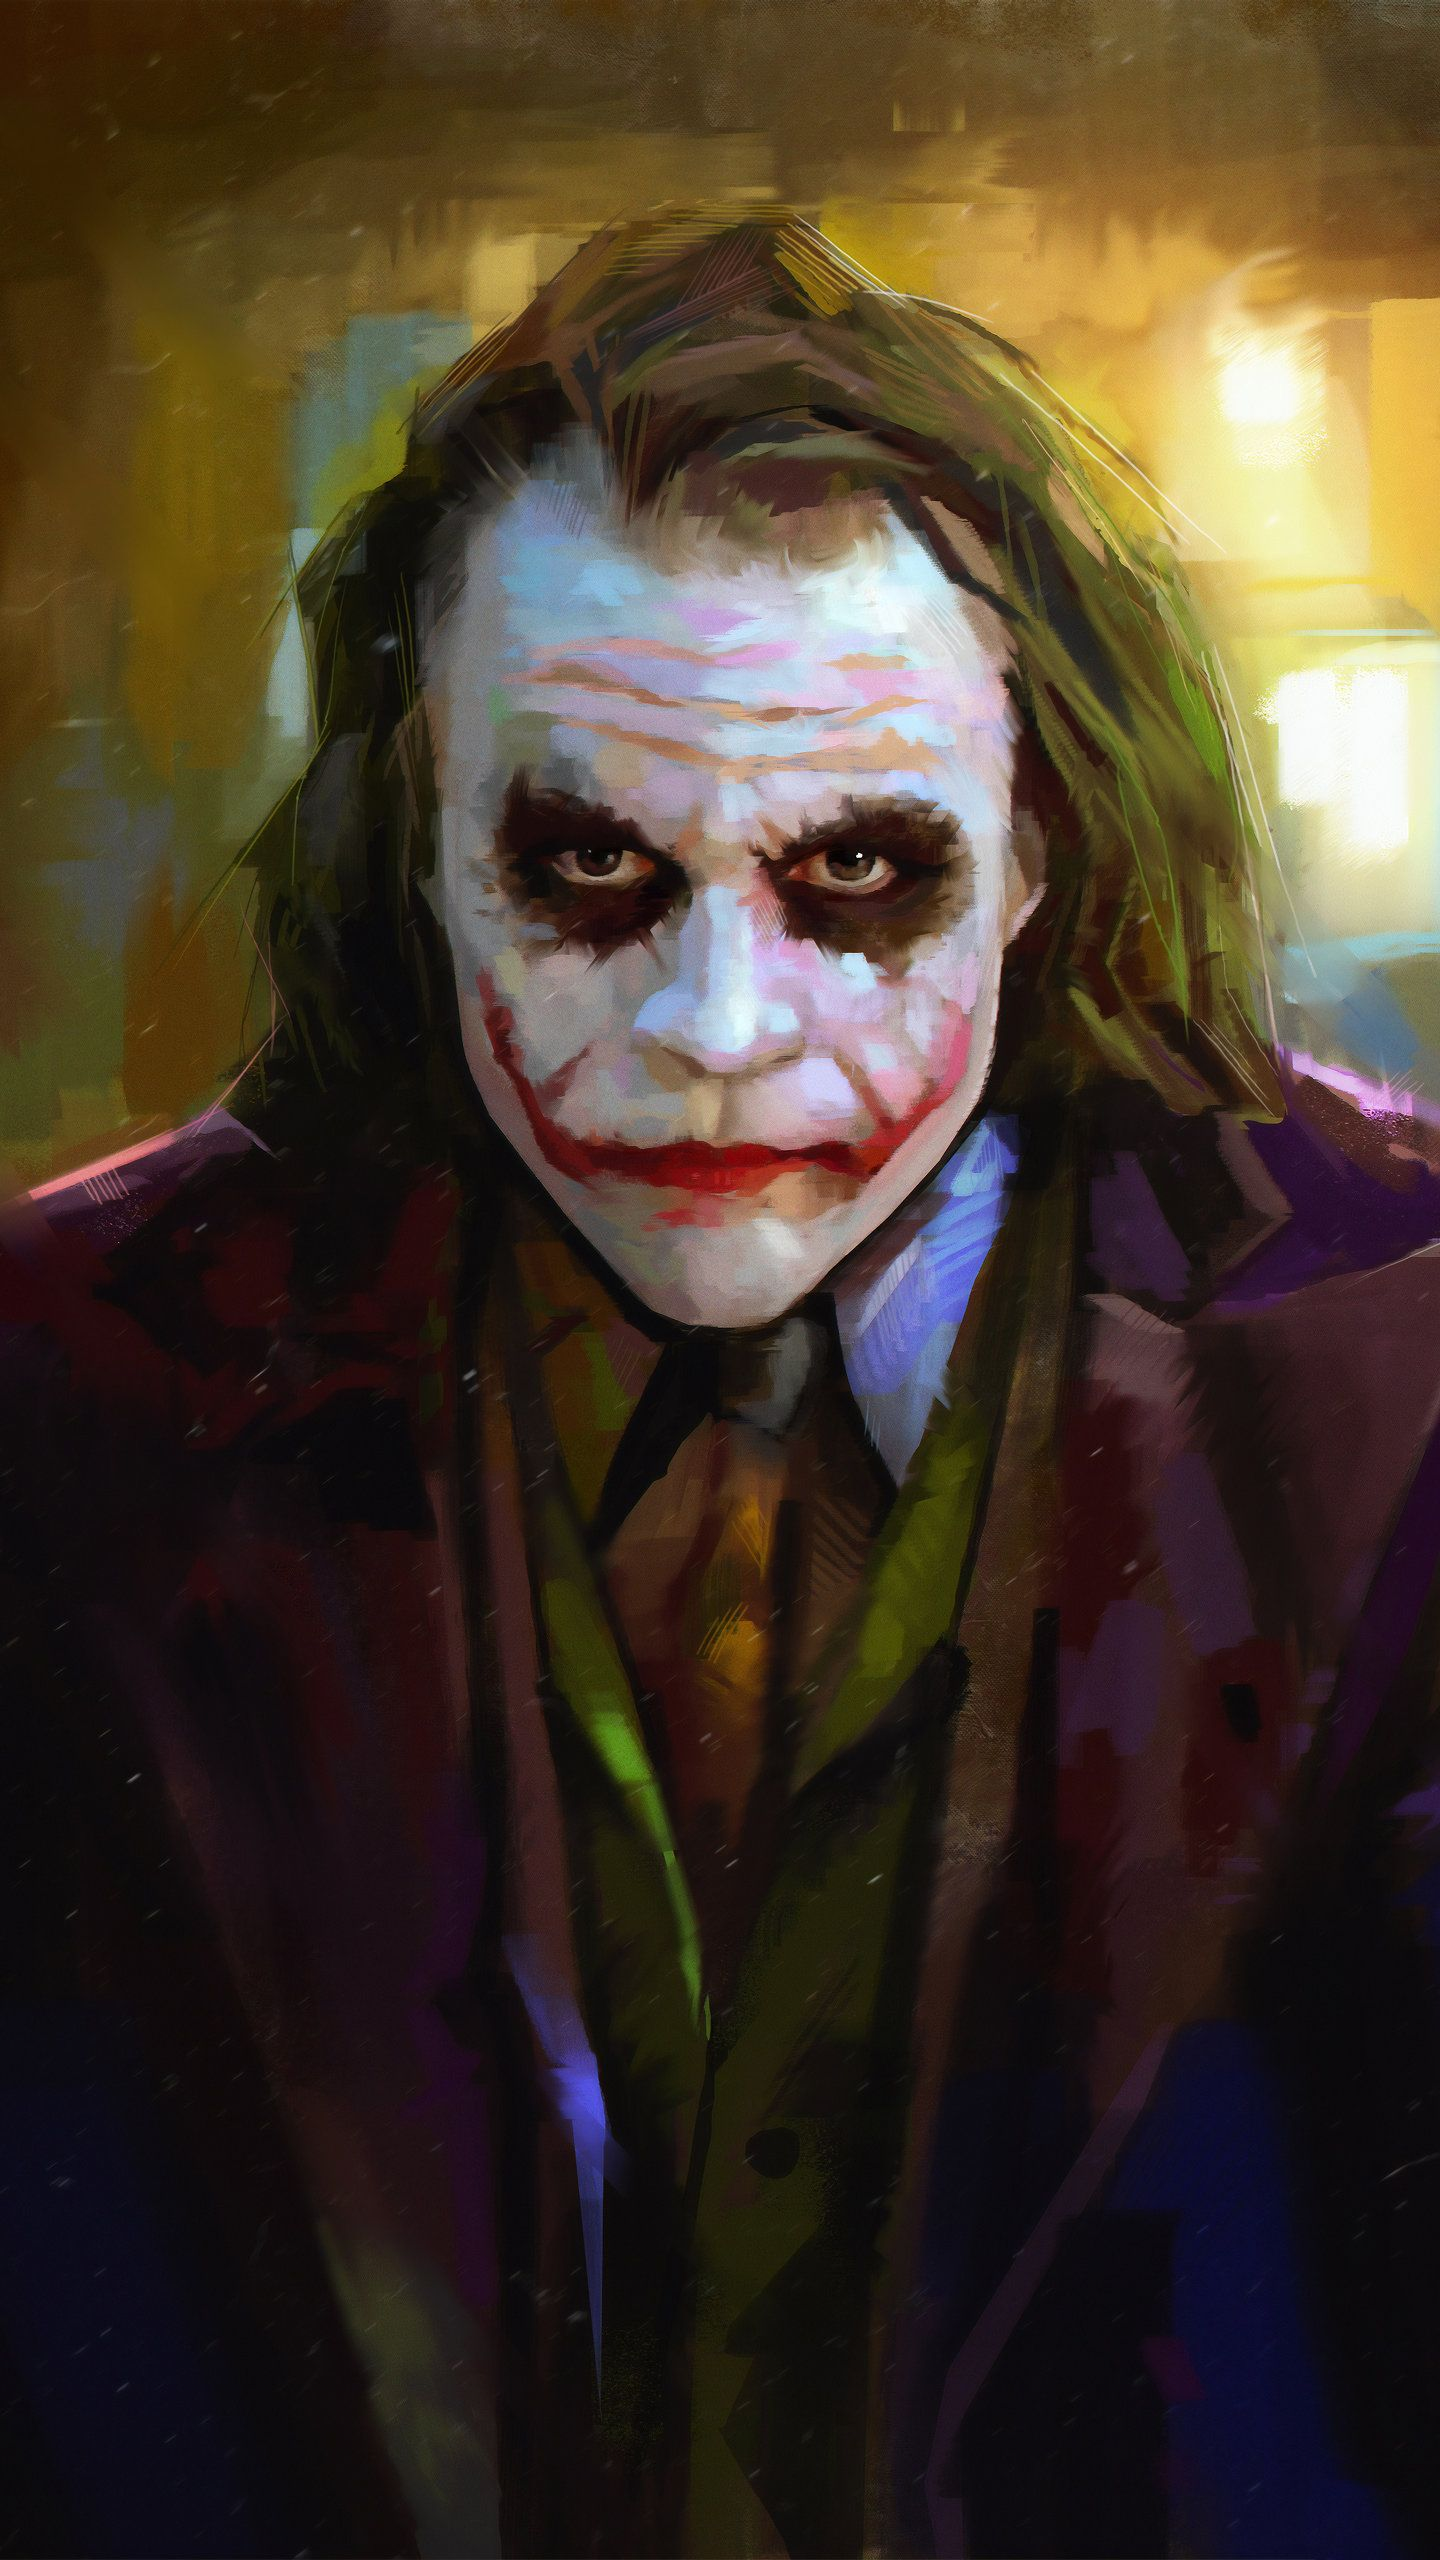 Heath Ledger As Joker 4k Hd Wallpaper 1440x2560 With Images